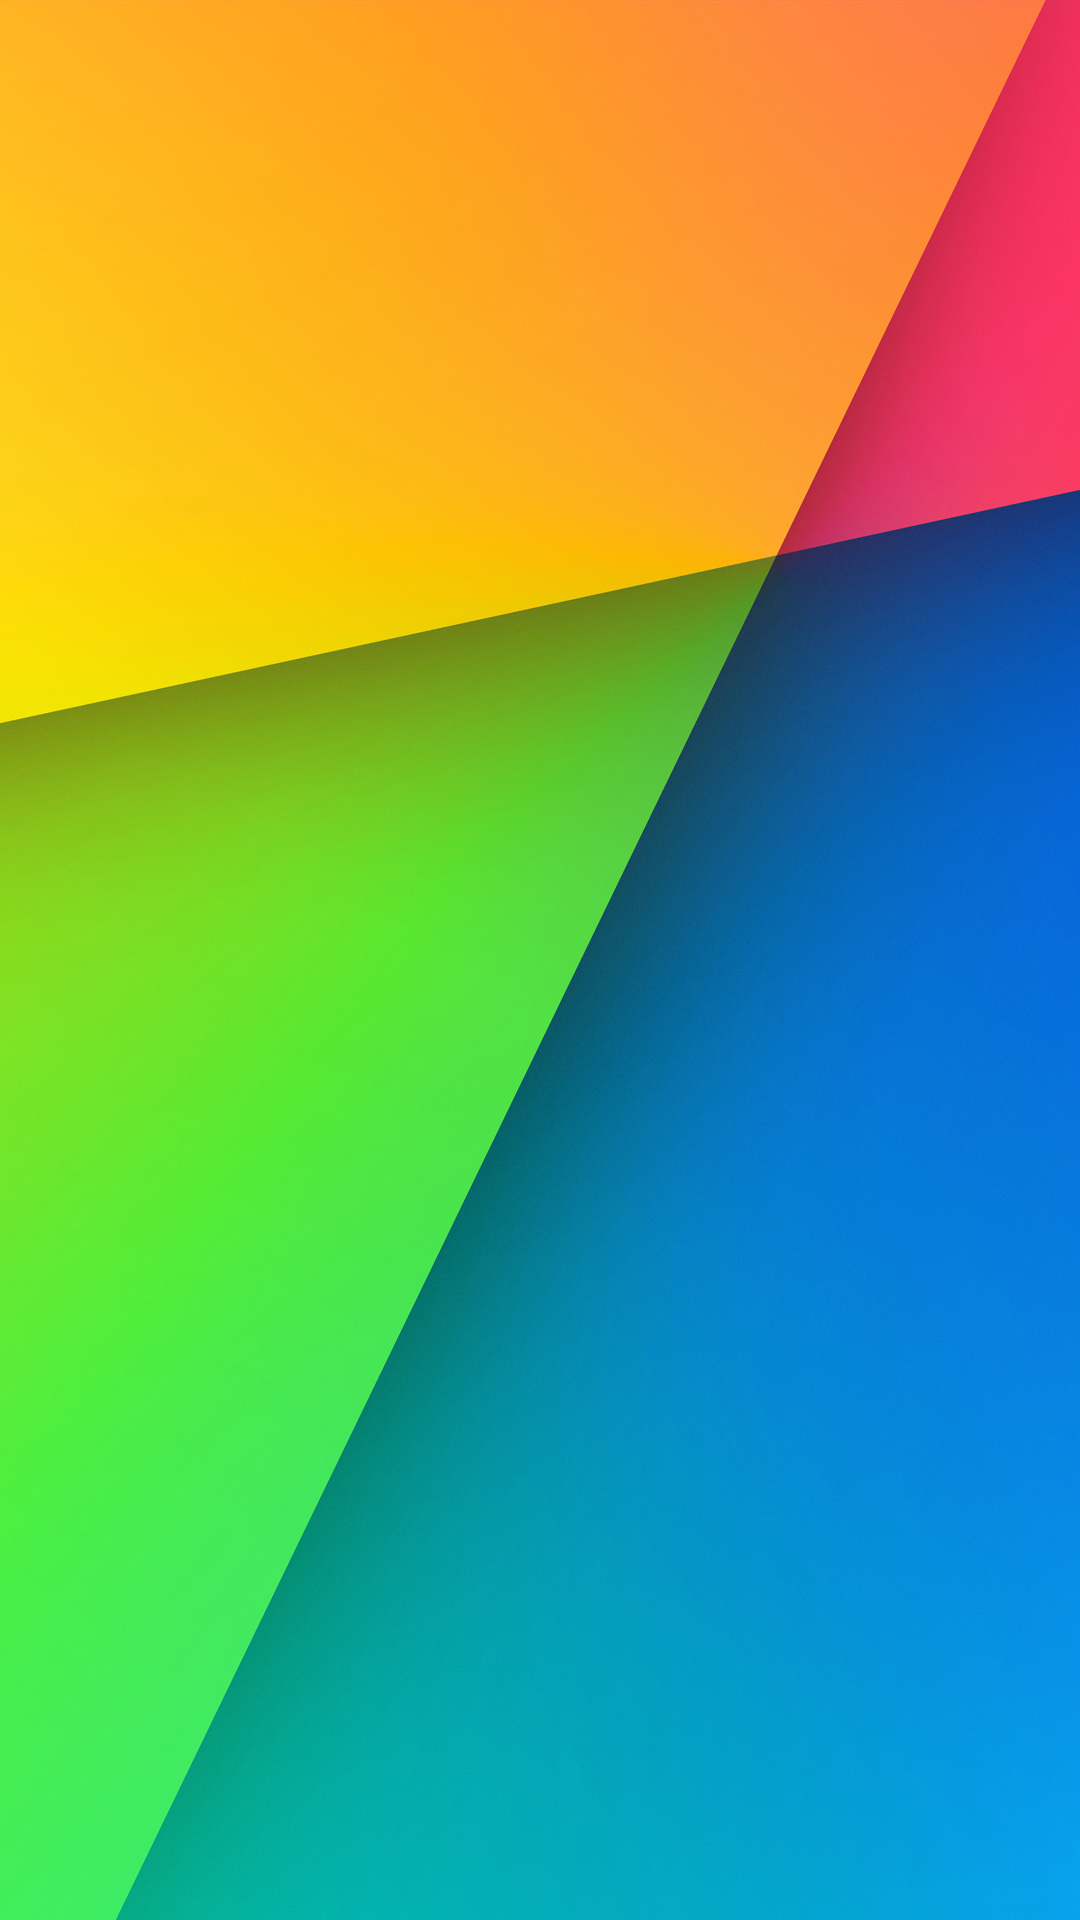 Free Download Nexus 7 Official Hd Wallpaper Android